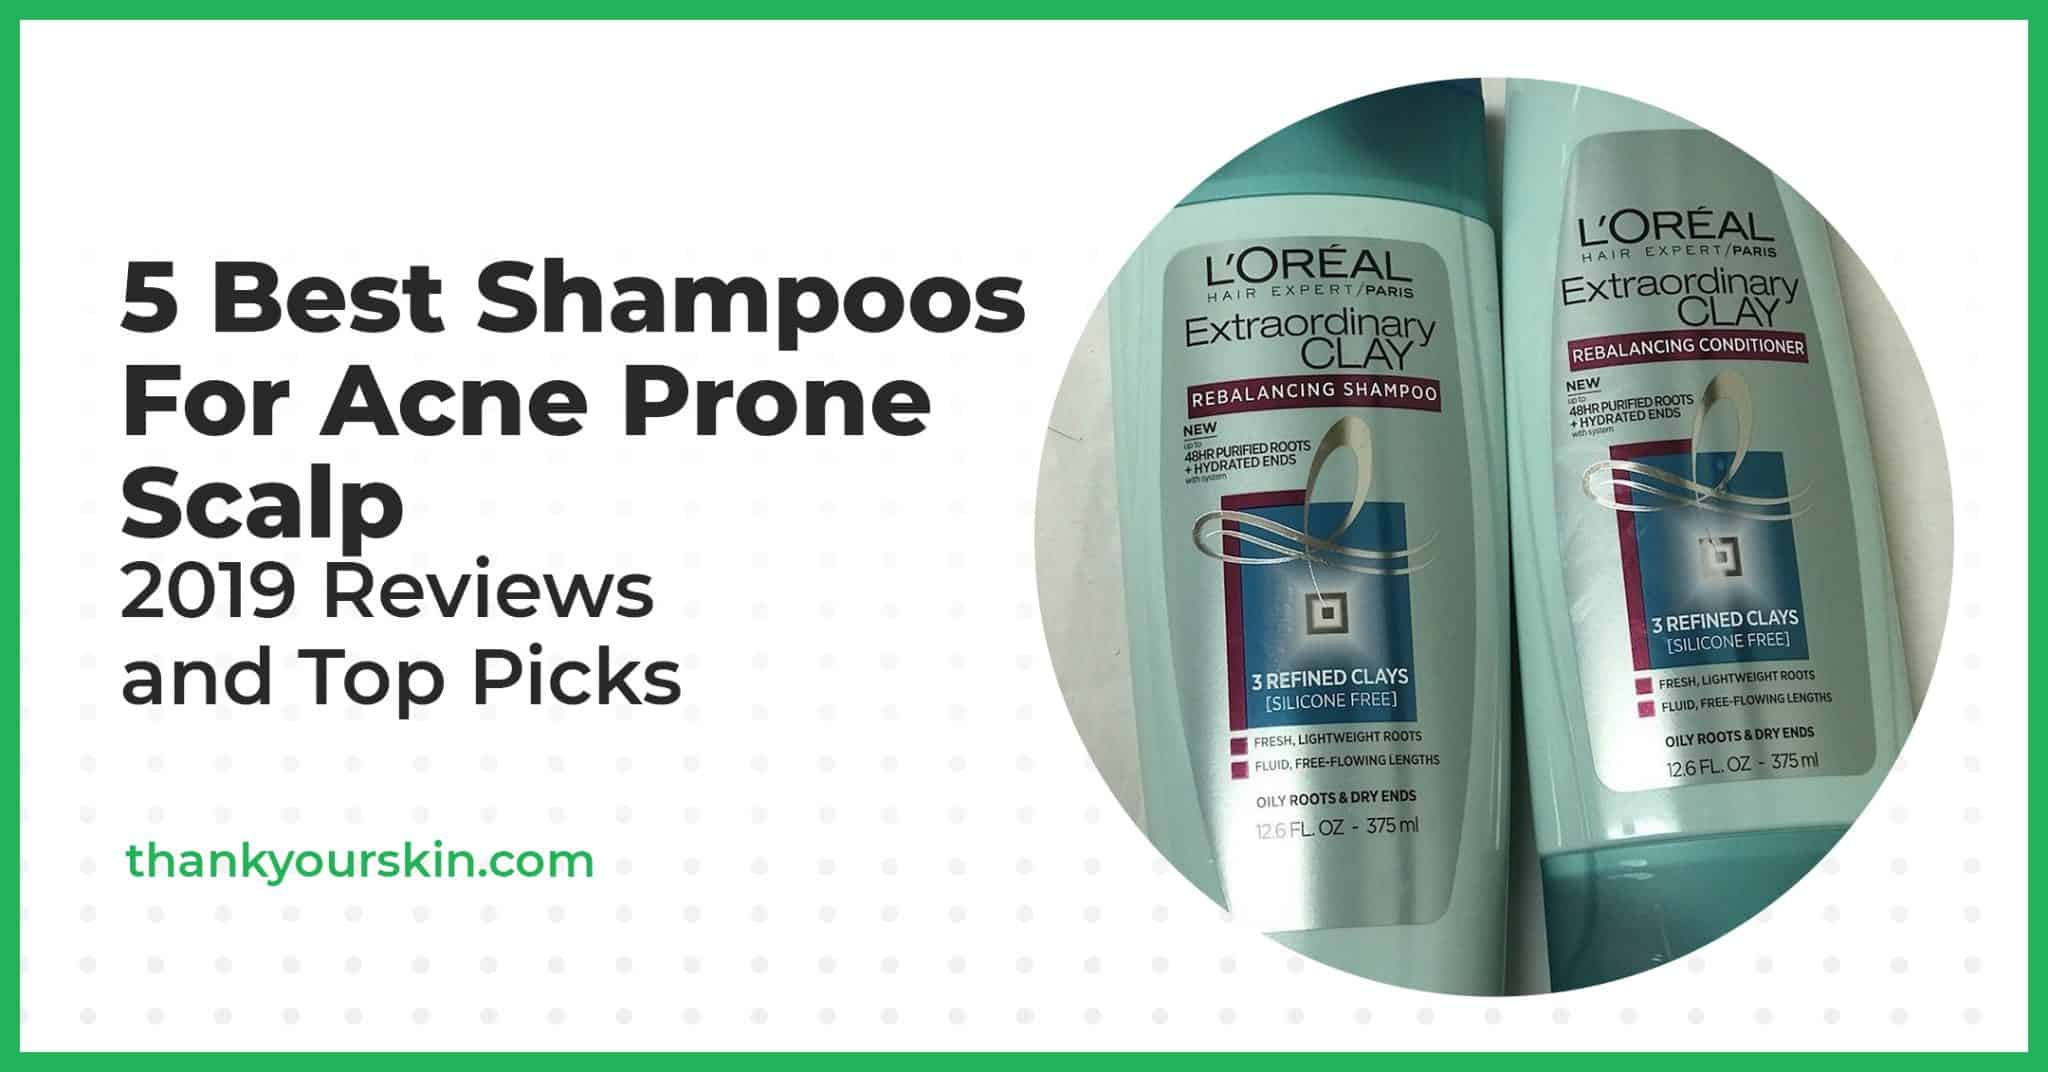 5 Best Shampoos For Acne Prone Scalp That Actually Get The Job Done